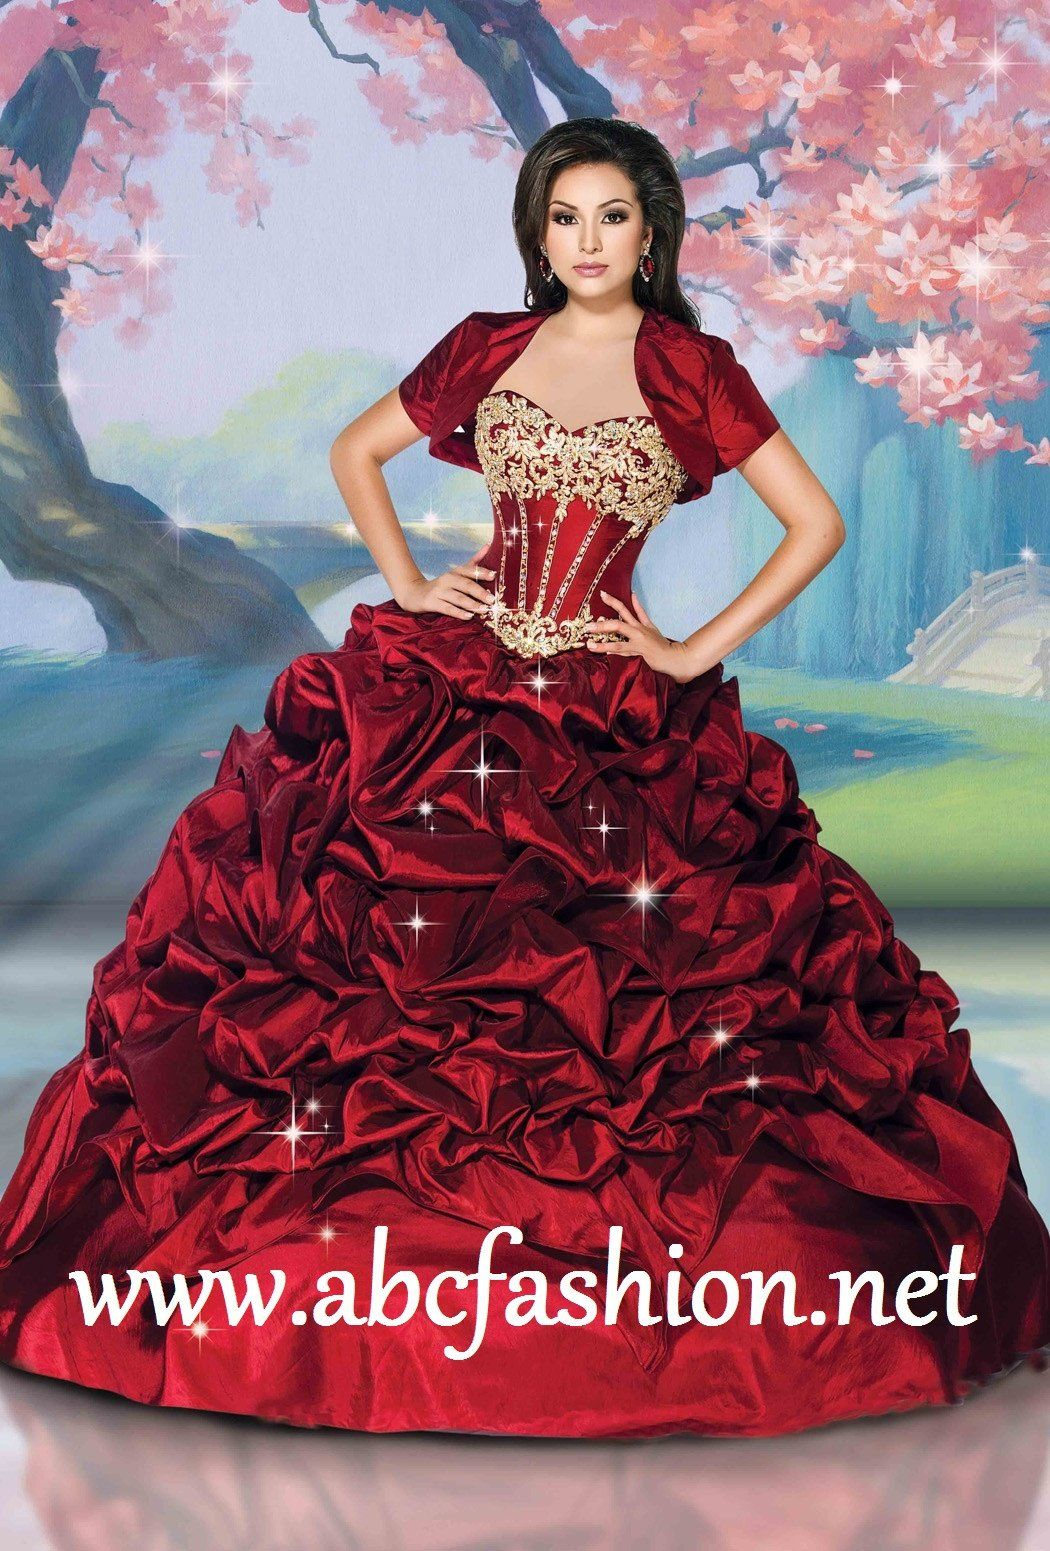 5b4ca43c2 Disney Royal Ball Quinceanera Dress Mulan Style 41075 in 2019 ...